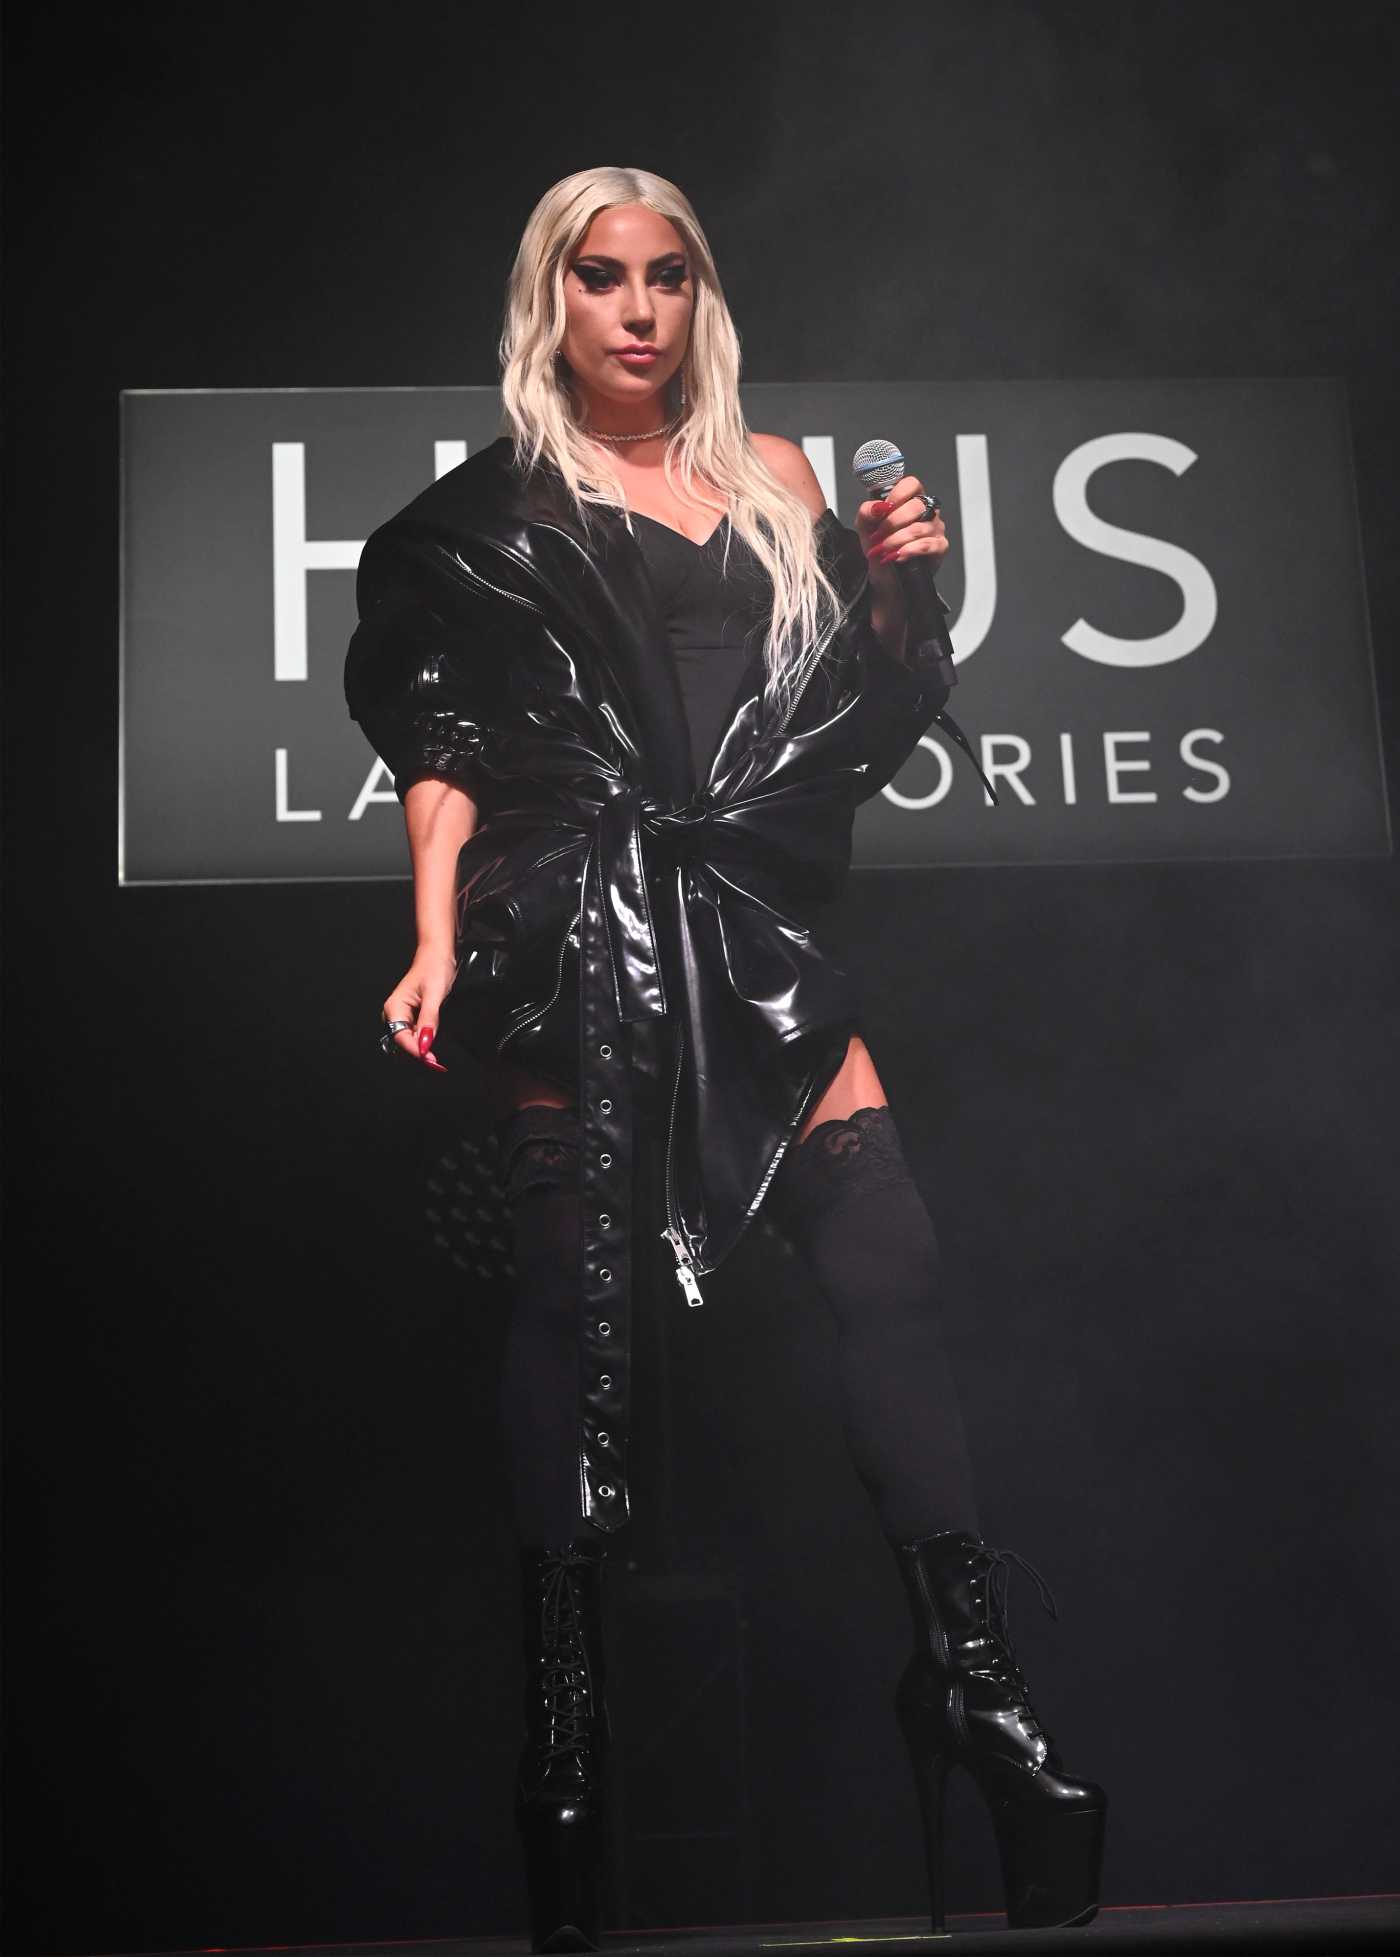 Lady Gaga Attends the Haus Laboratories Launch at Barker Hangar in Santa Monica 09/16/2019